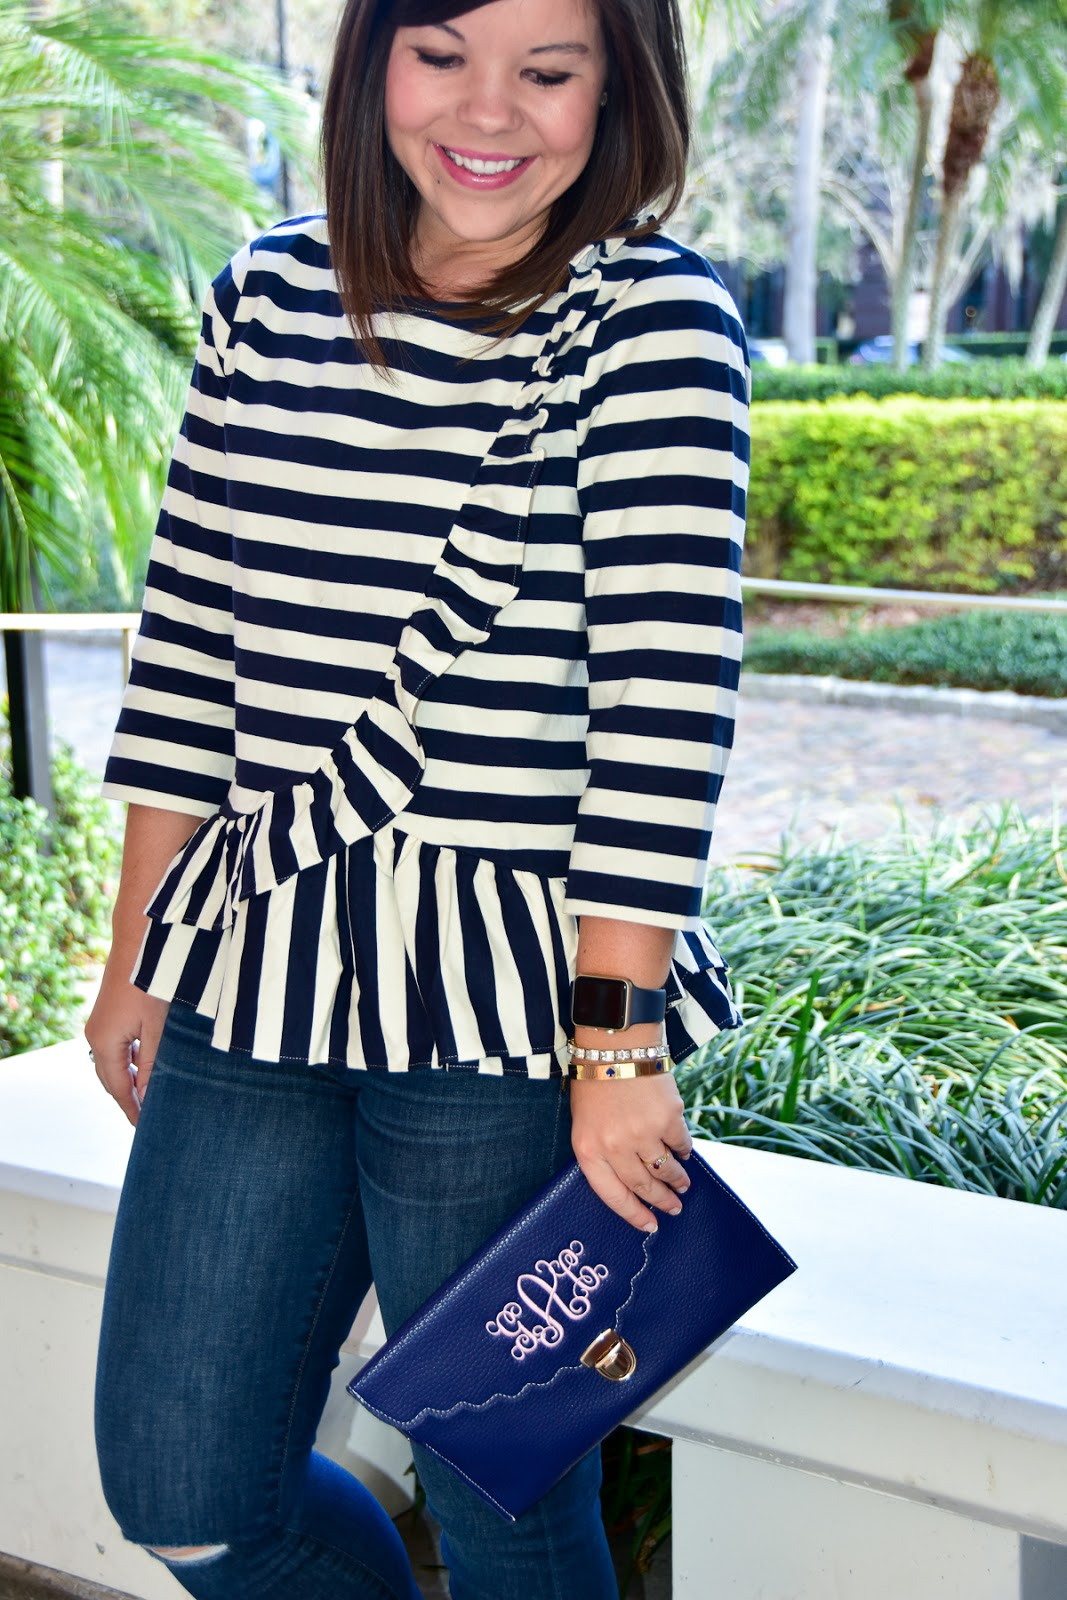 J. Crew Striped Top + Oka-B Giveaway WINNER!